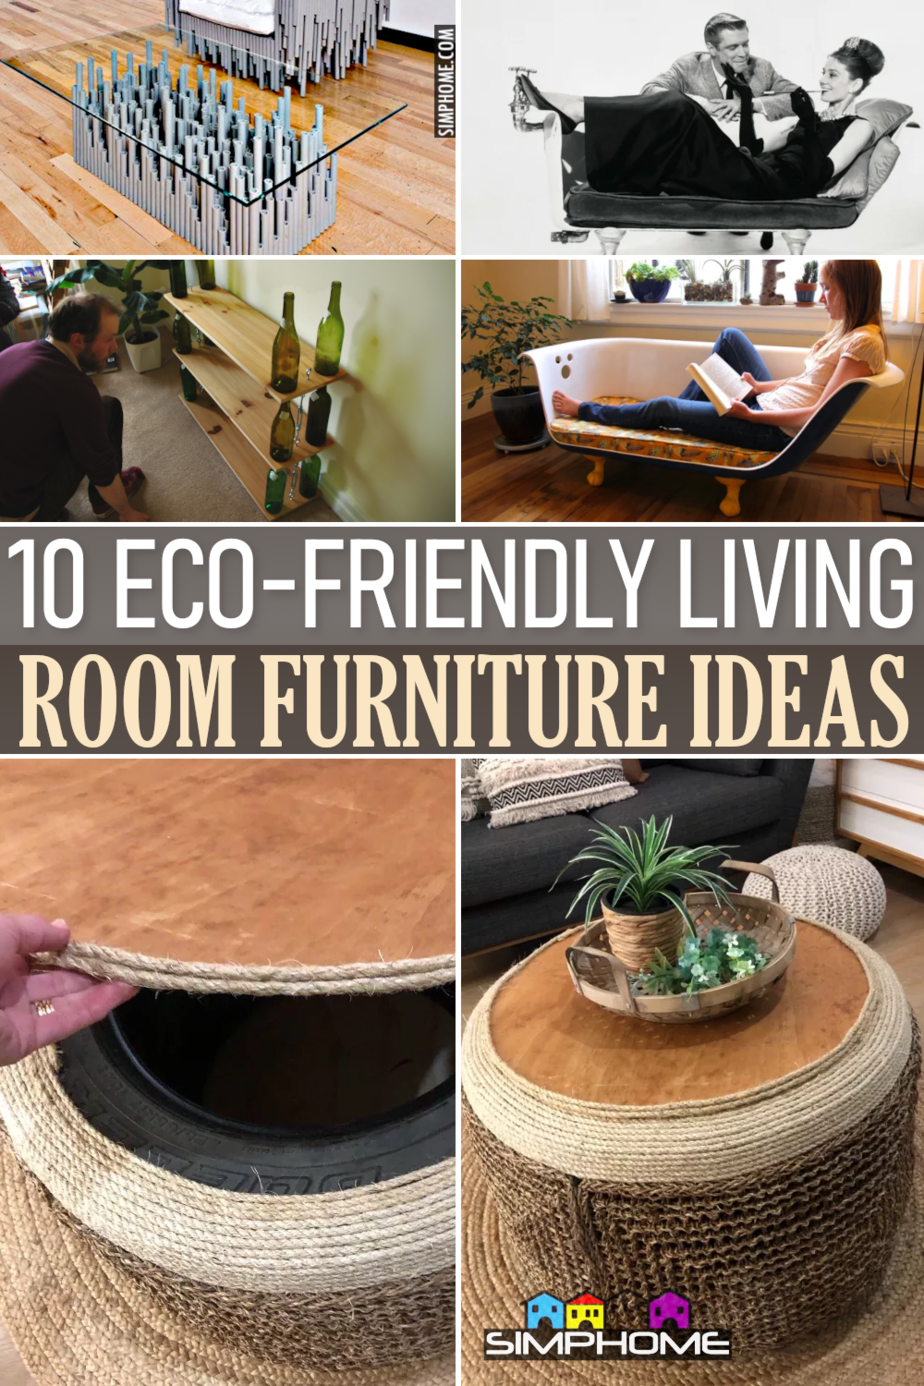 10 Furniture Ideas for Living Room via Simphome.comFeatured